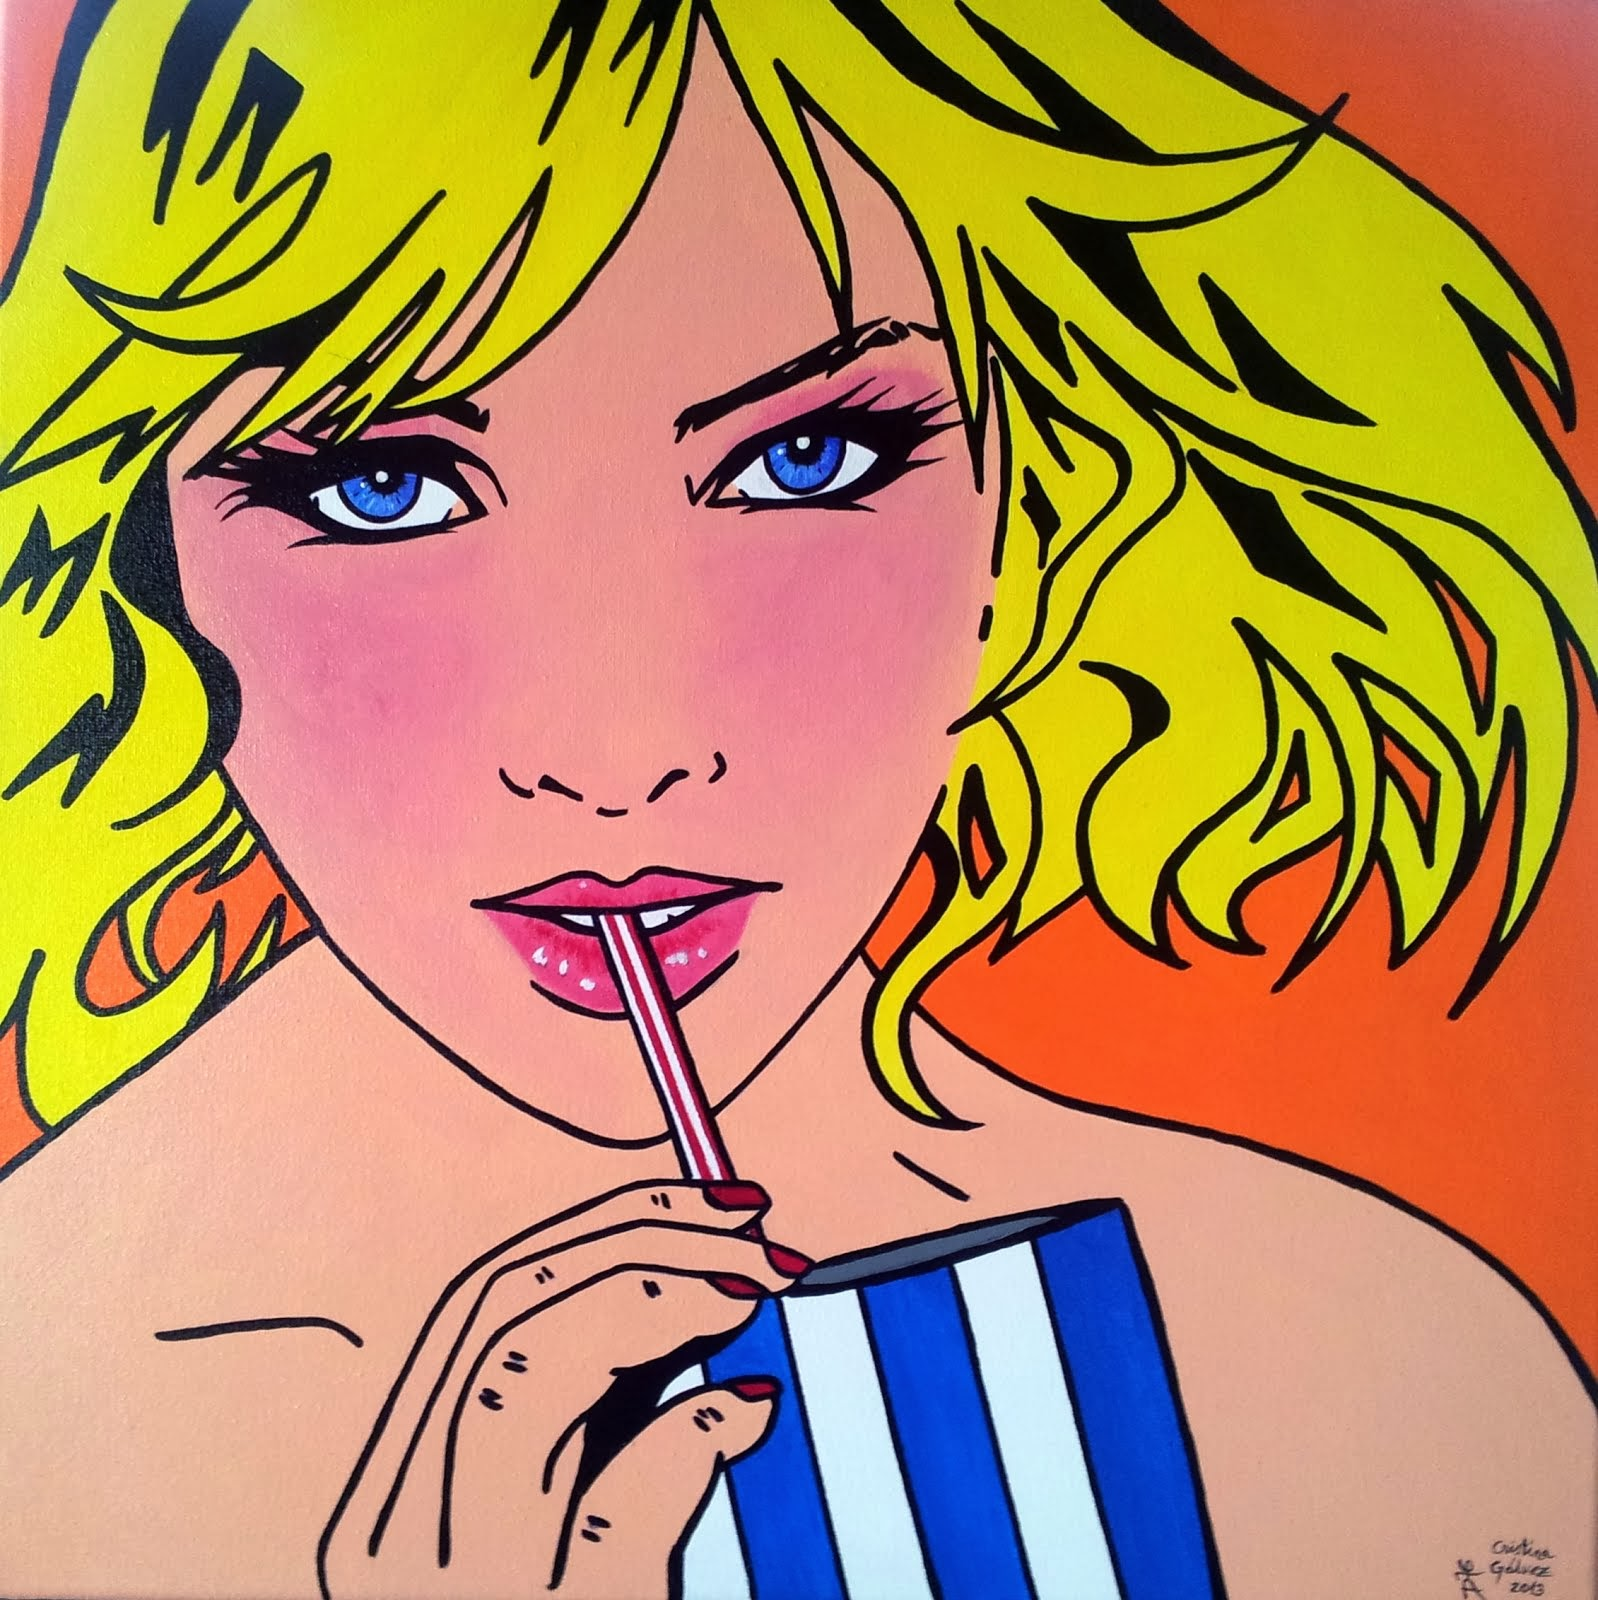 POP ART POR ENCARGO